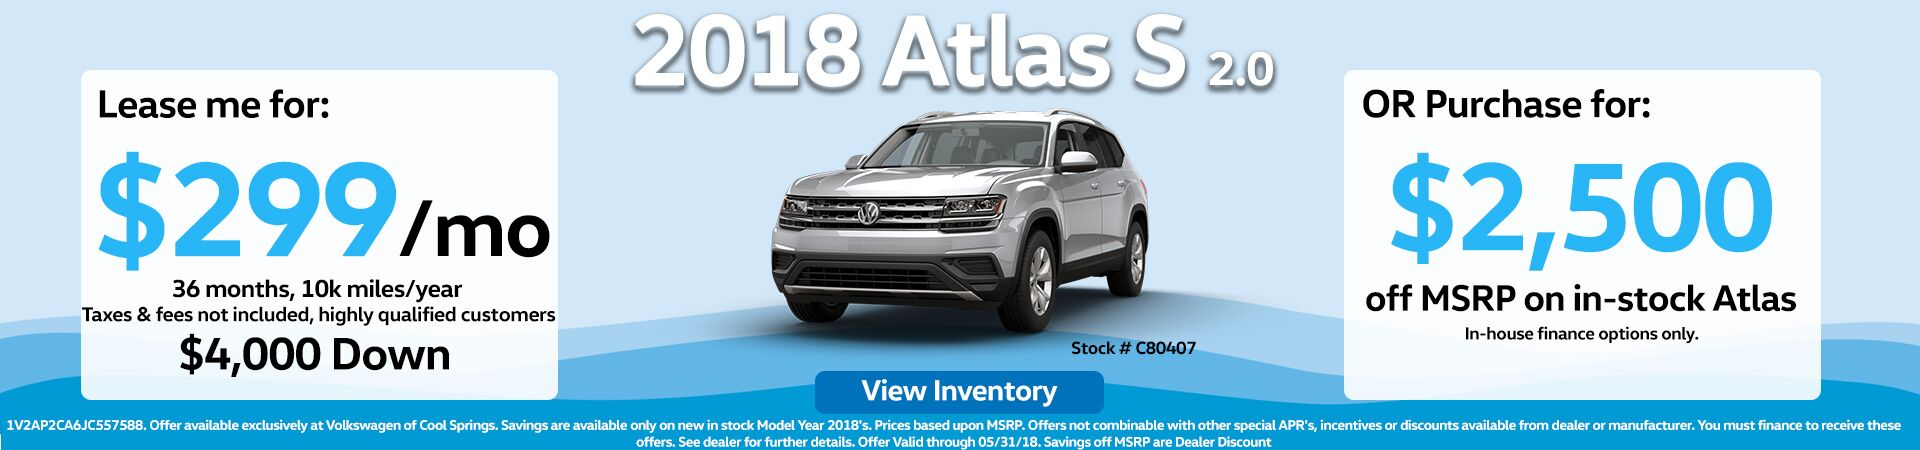 Atlas Offer May